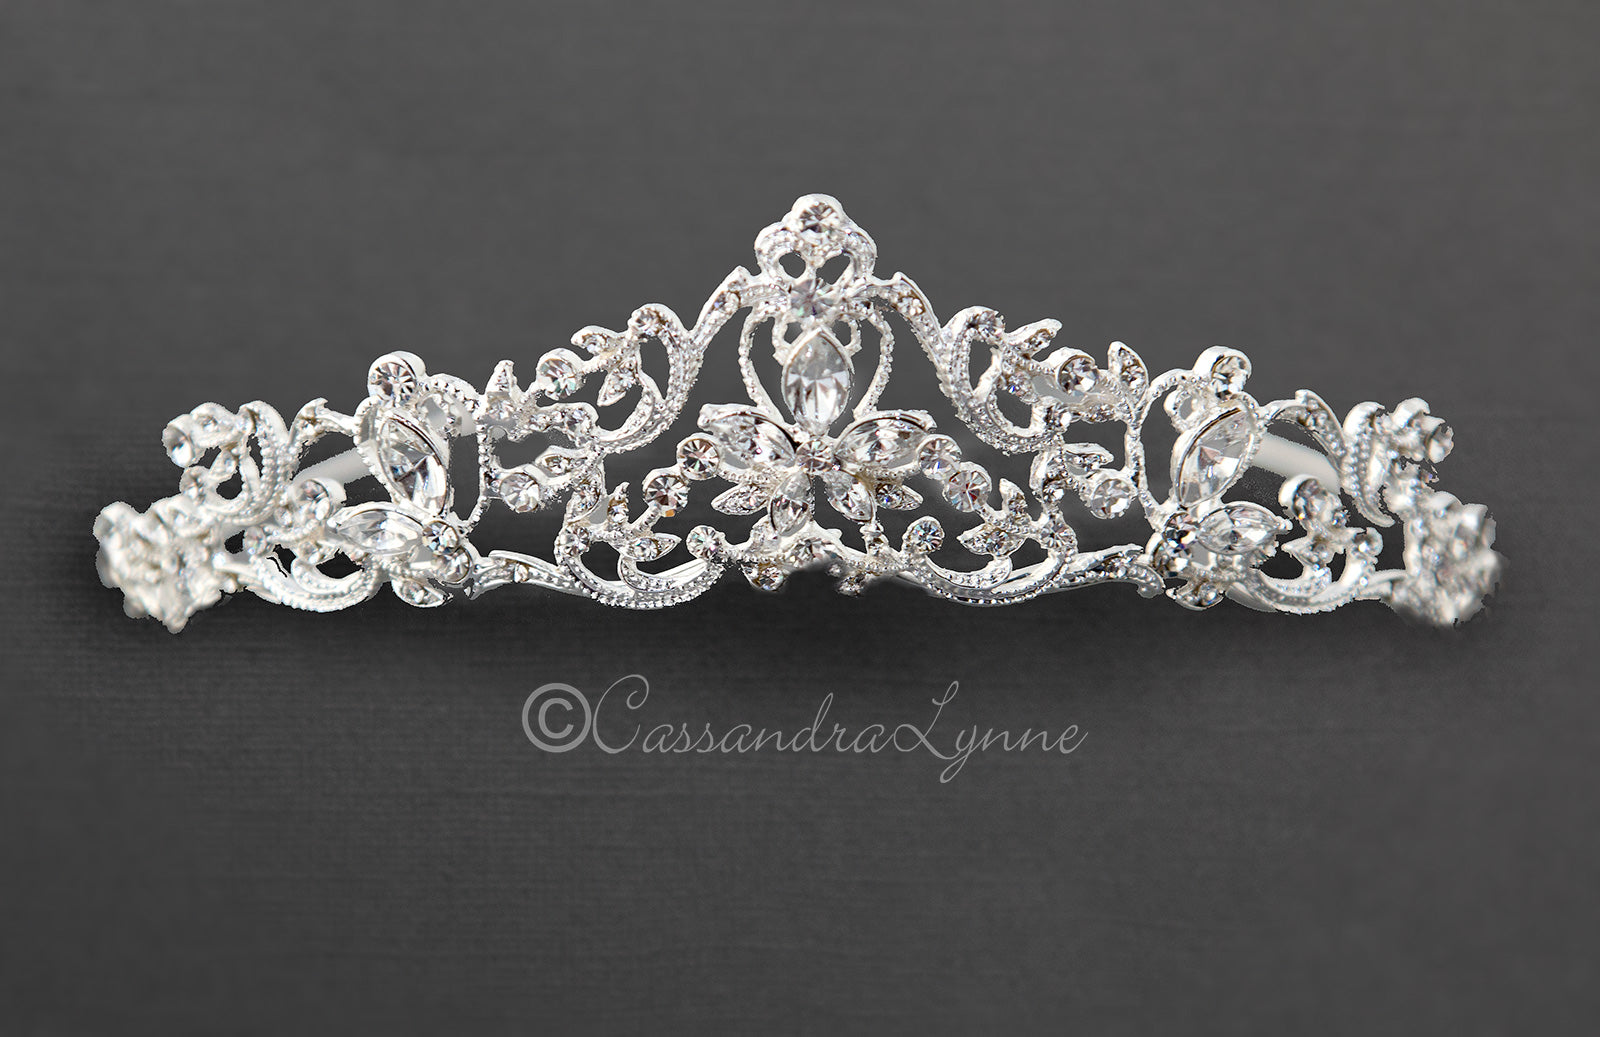 Filigree Bridal Tiara with Marquise Stones